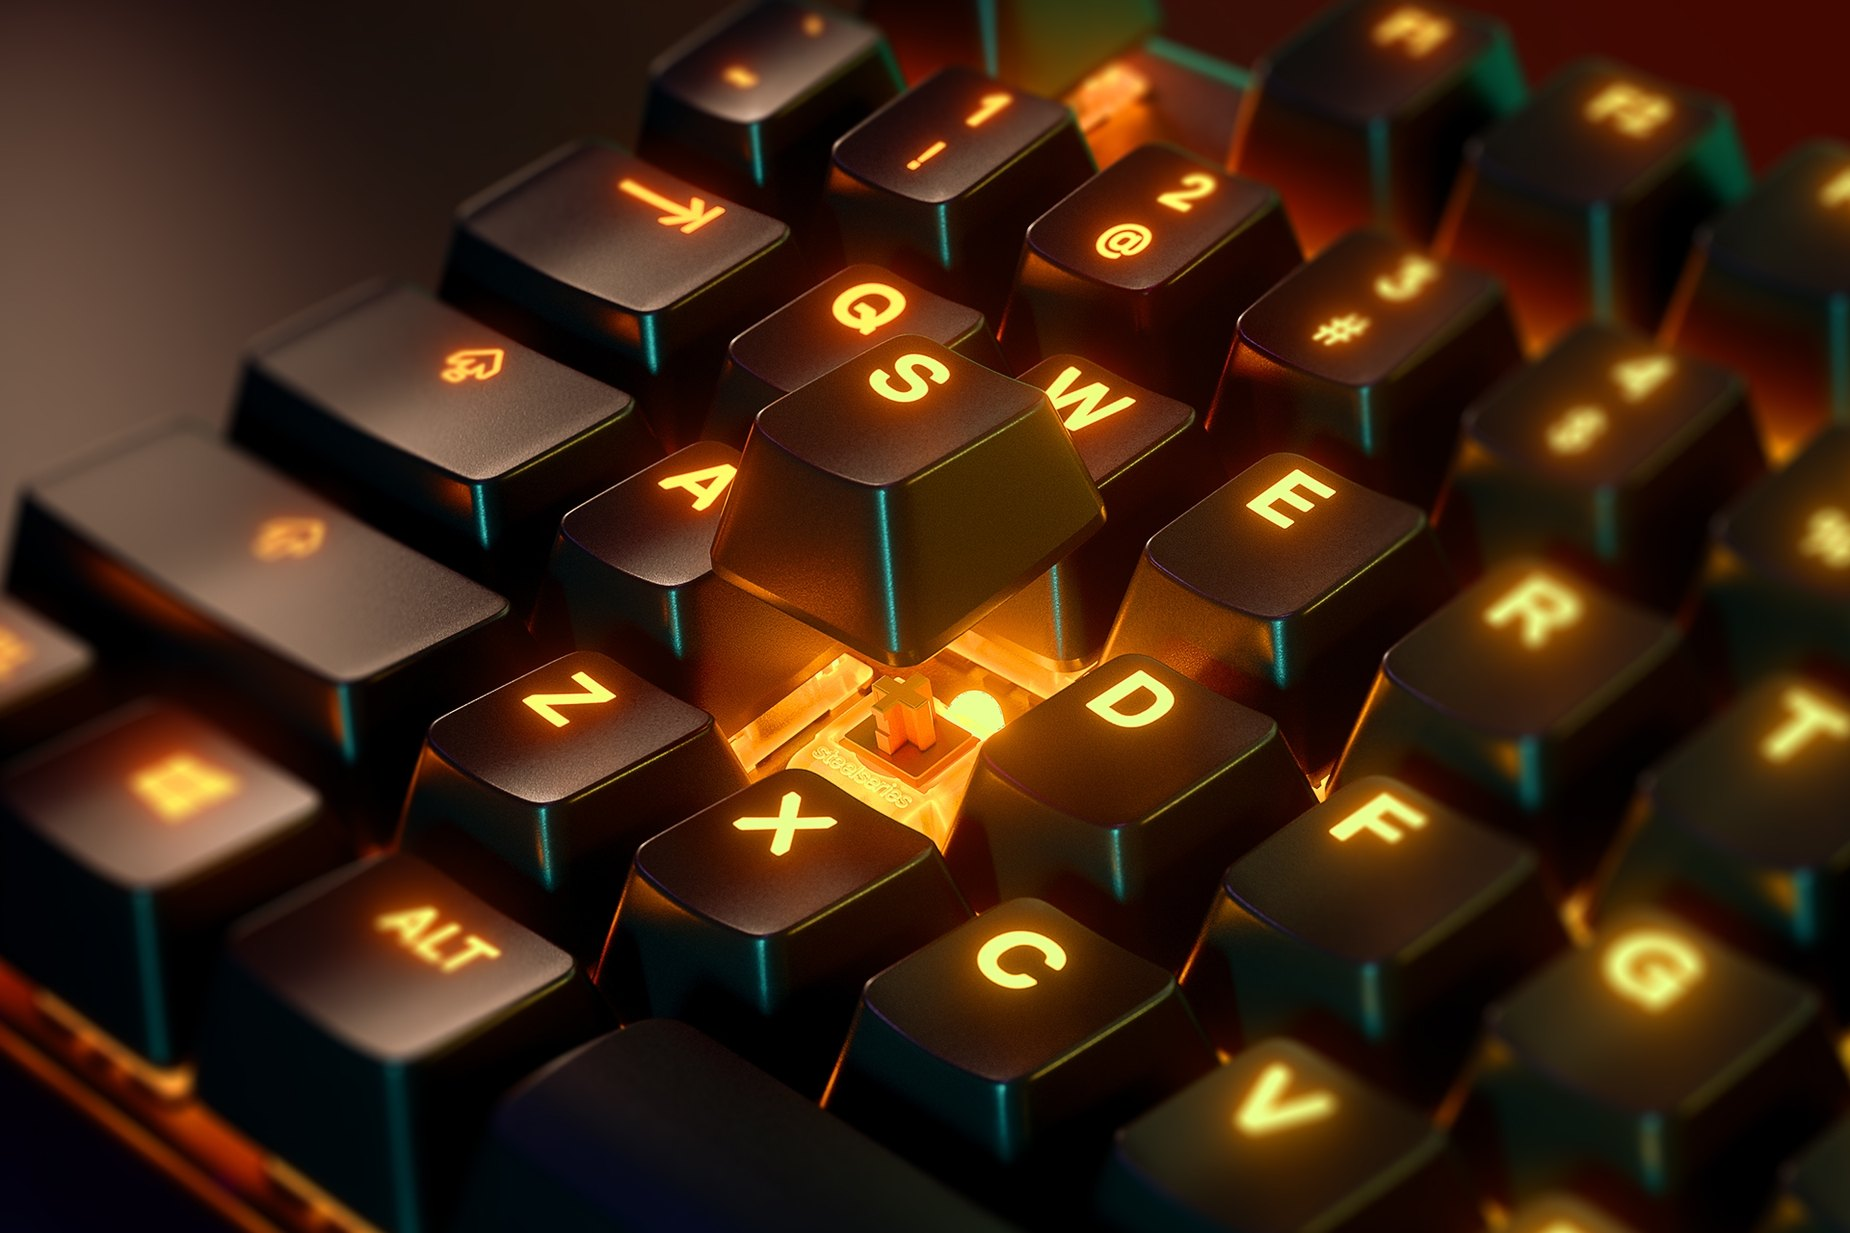 Zoomed in view of a single key on the UK English - Apex 7 TKL (Brown Switch) gaming keyboard, the key is raised up to show the SteelSeries QX2 Mechanical RGB Switch underneath